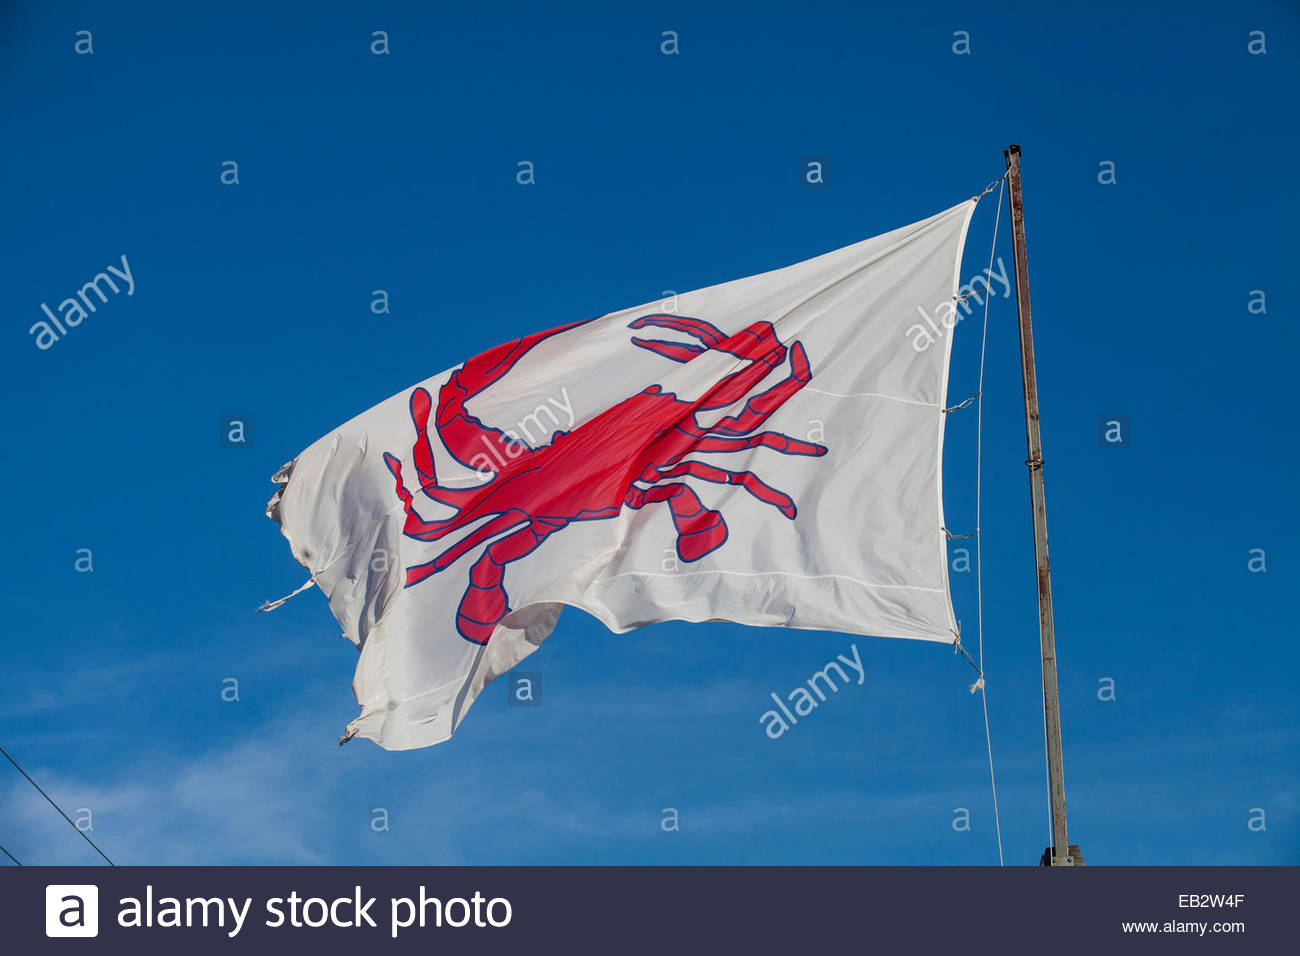 A restaurant flys a red carb flag to advertise its speciality in Wildwoods, New Jersey. - Stock Image